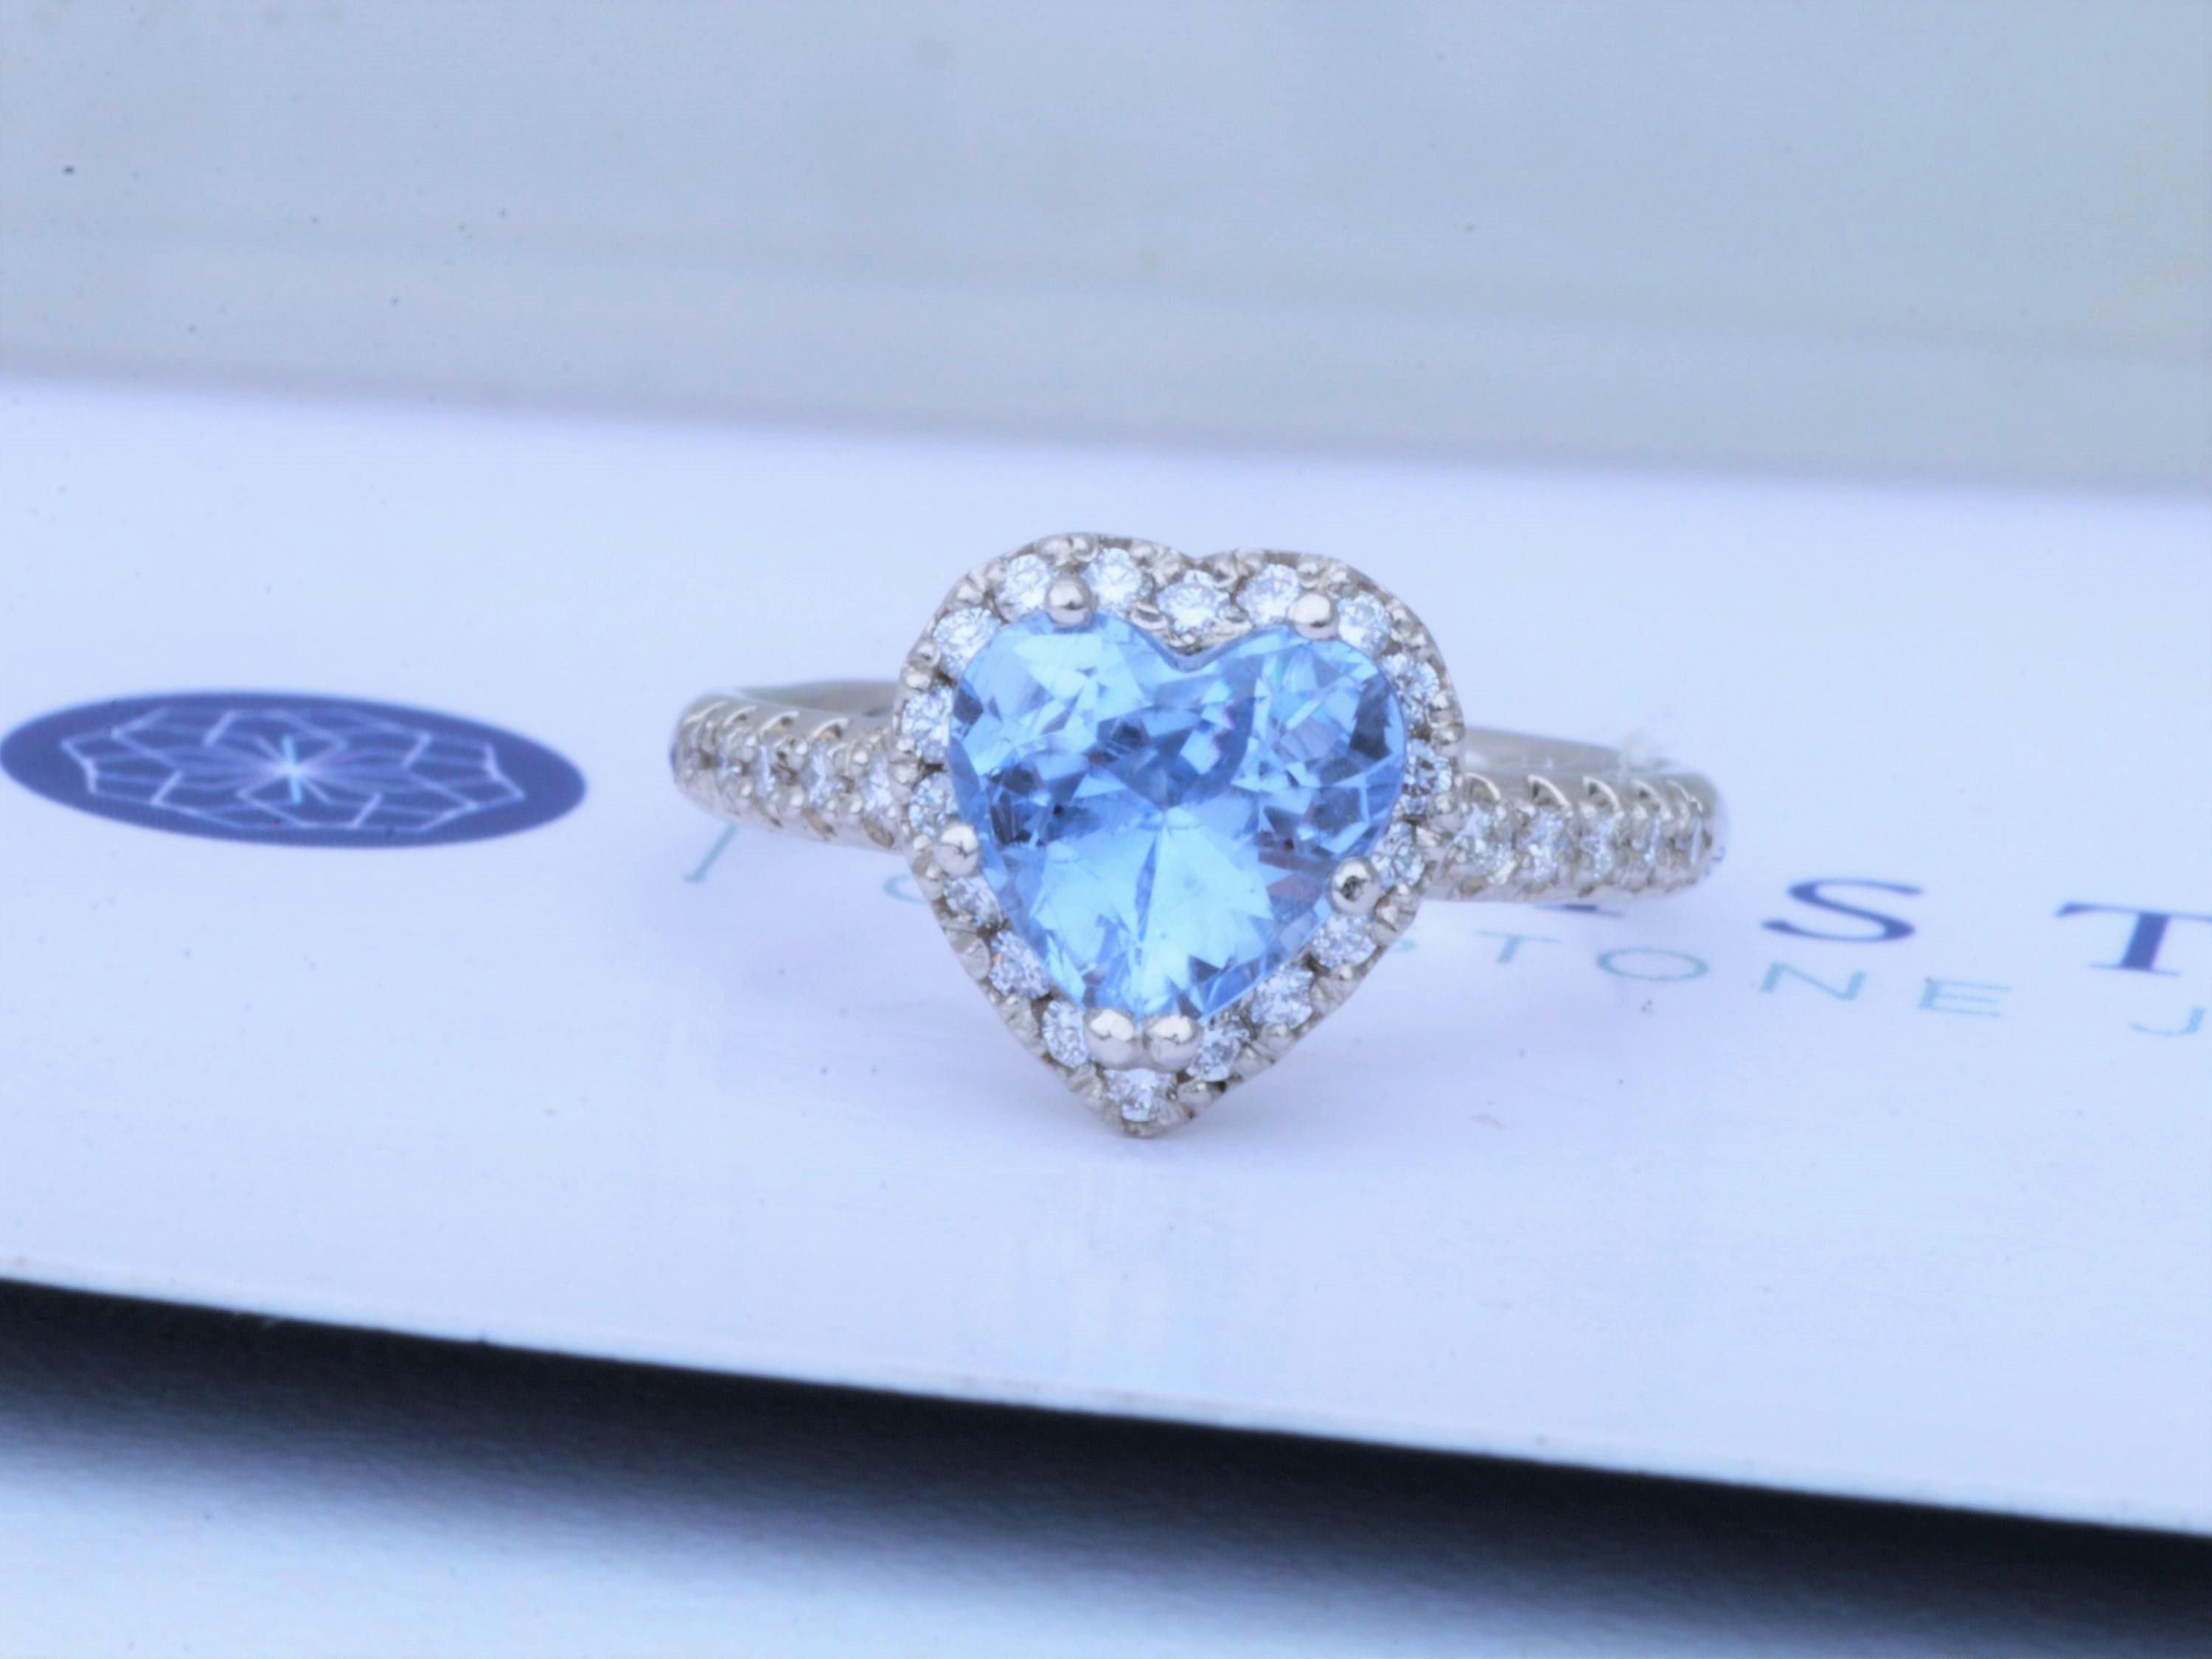 halo ring with ctw prong round white blue render metal gold marquise engagement sapphire shop floor light center emitter stone aqua